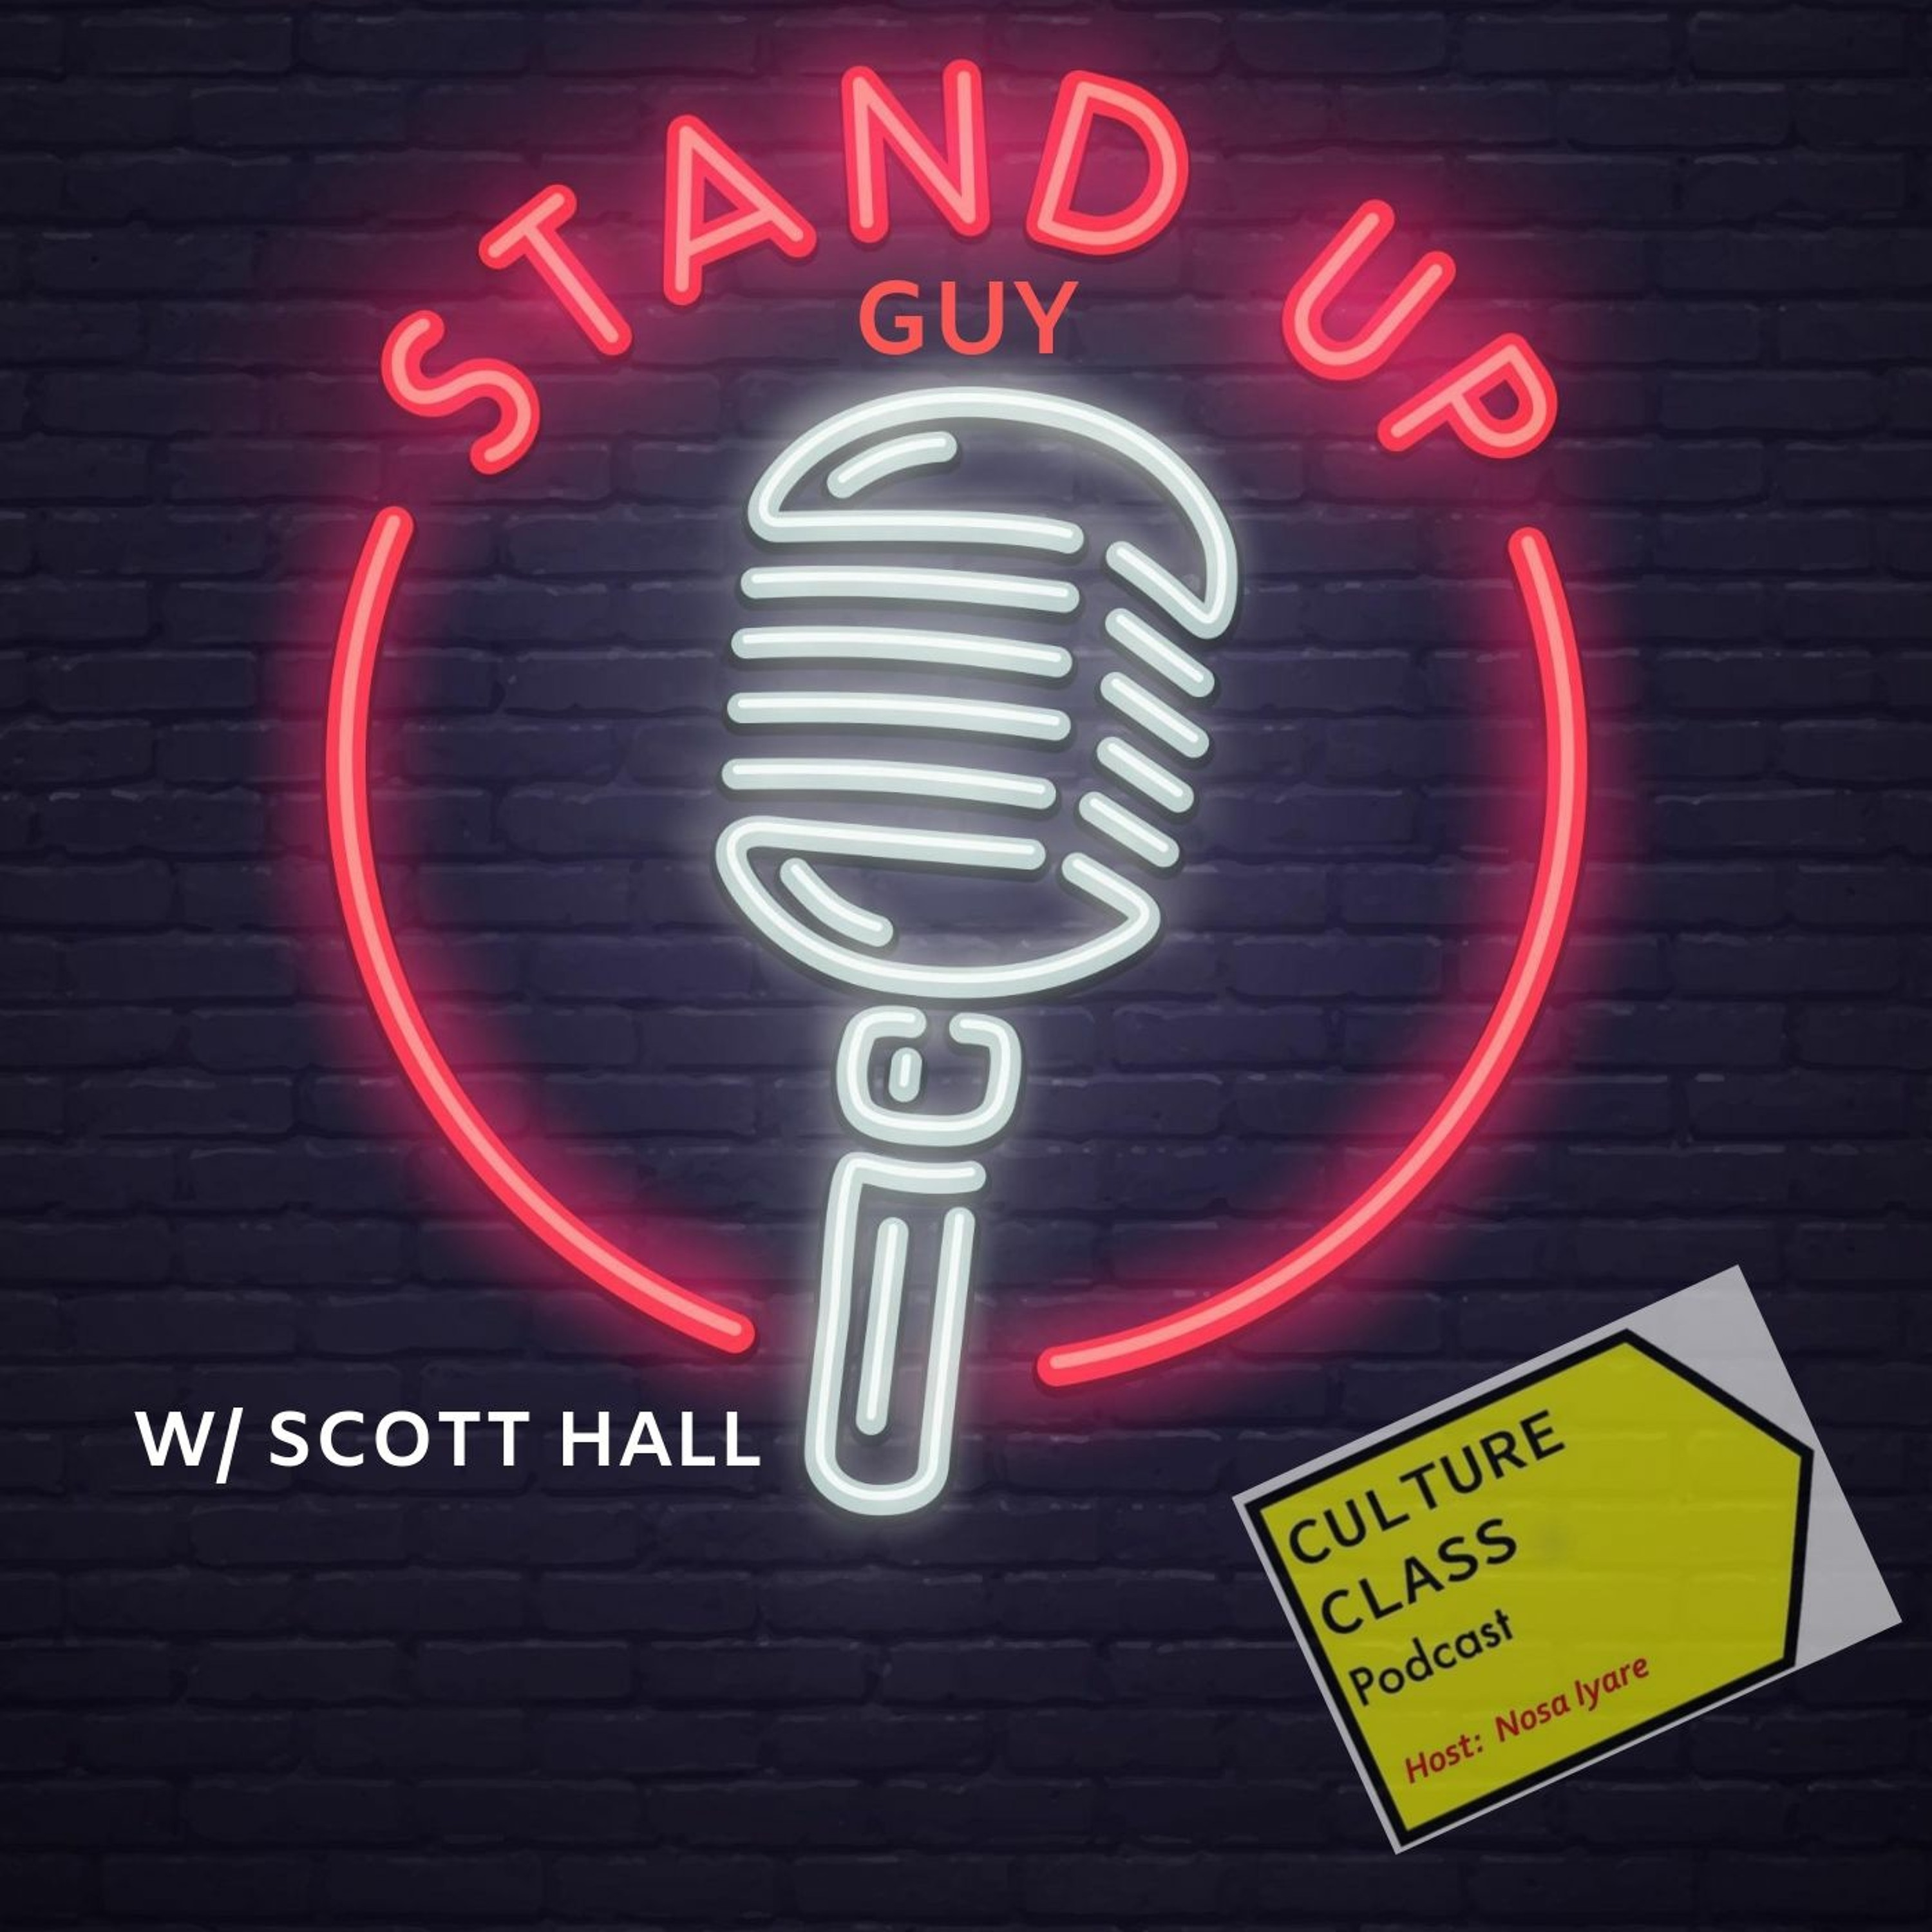 Ep 029- Stand Up Guy (w/Scott Hall)